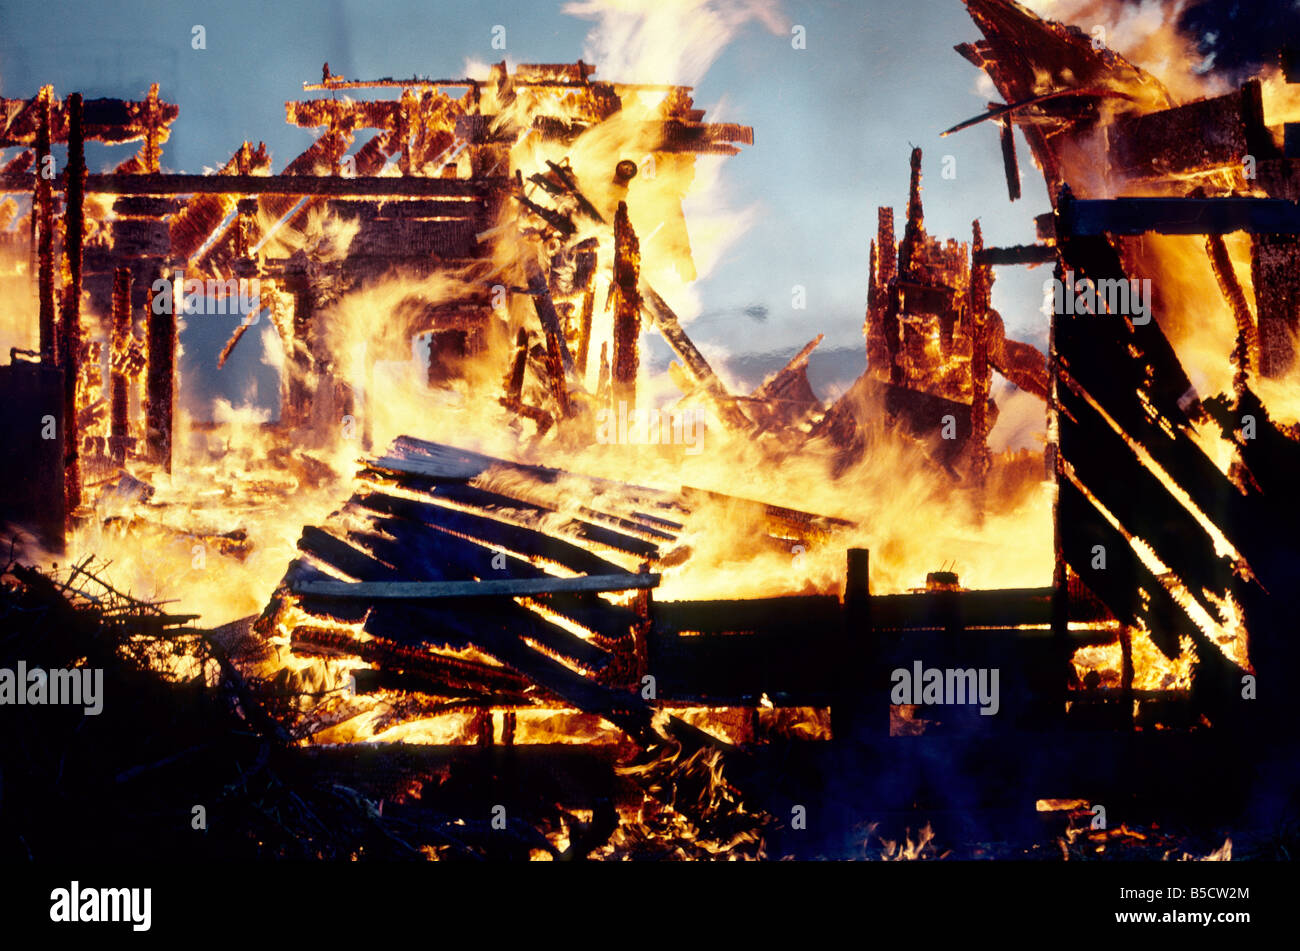 Inferno, flames totally consuming family home. - Stock Image